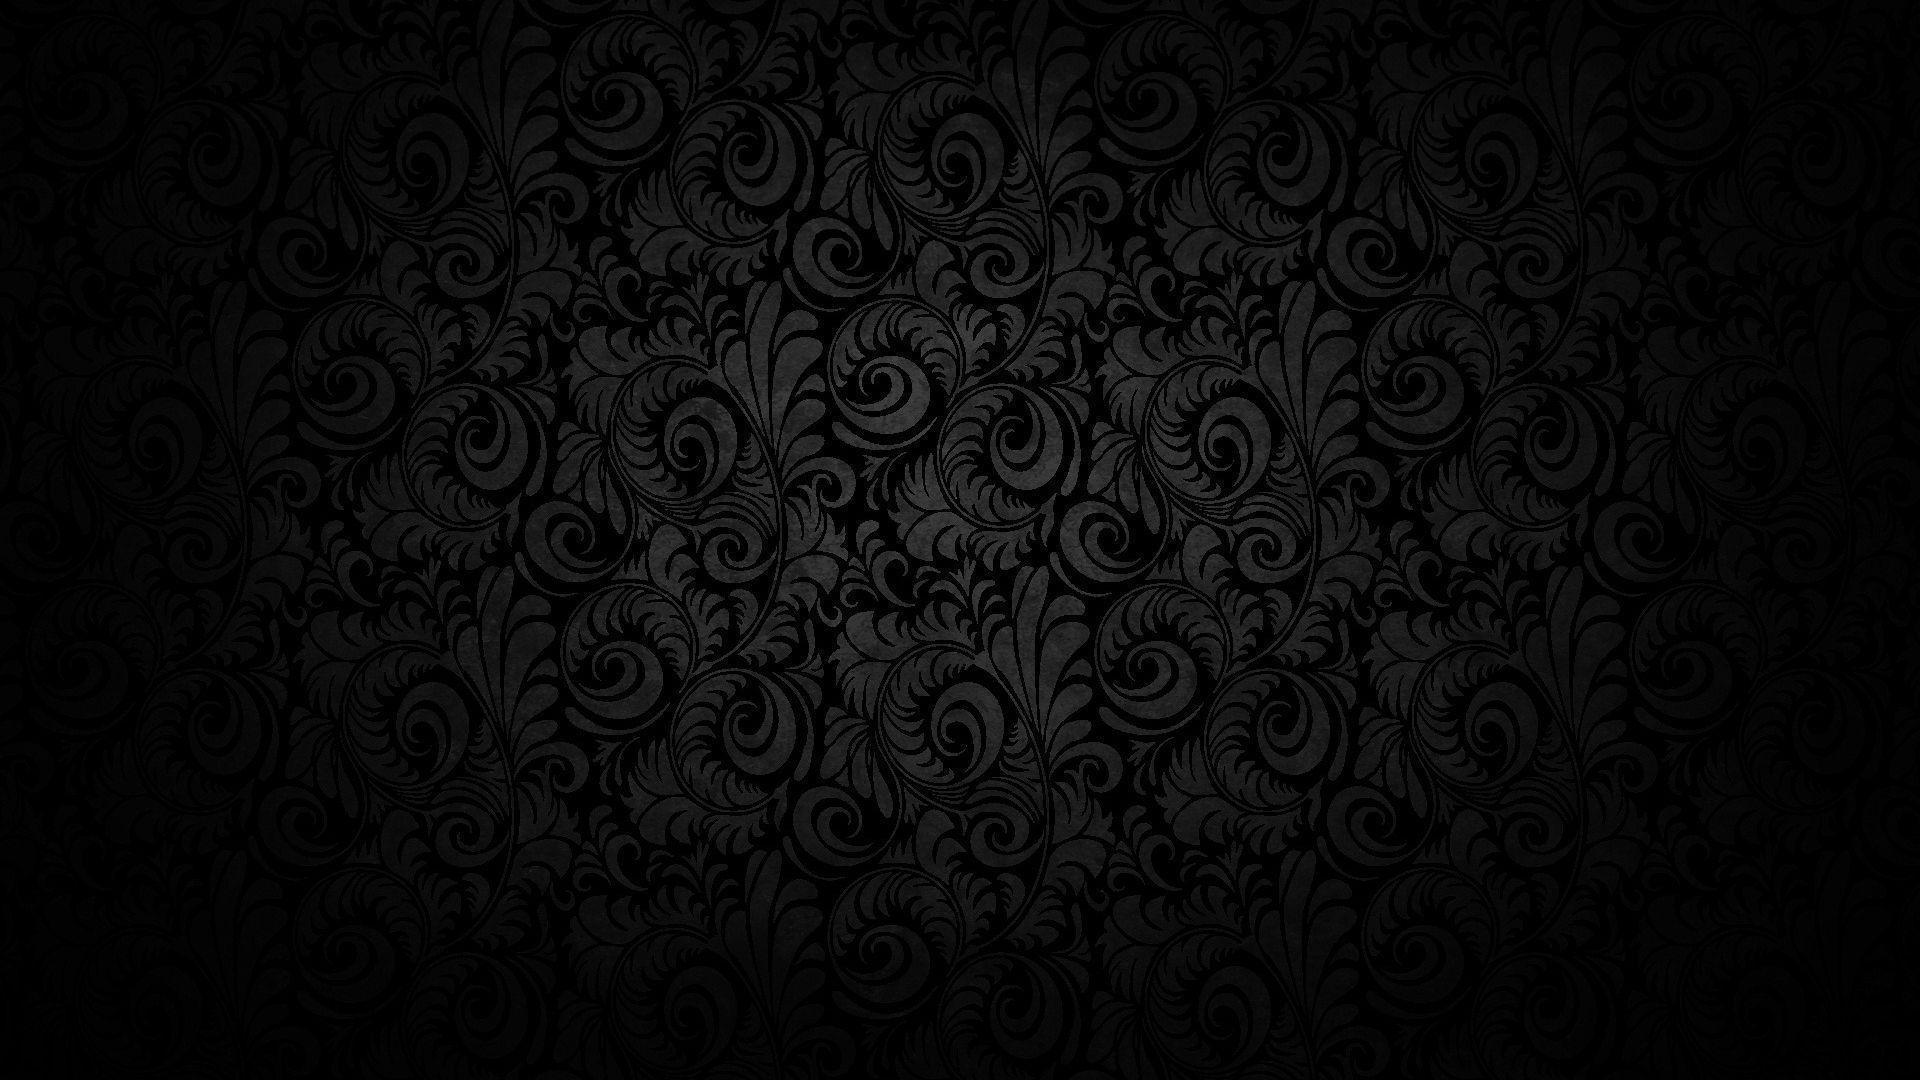 1080p Wallpapers of Abstract Black Swirl Wallpaper Backgrounds